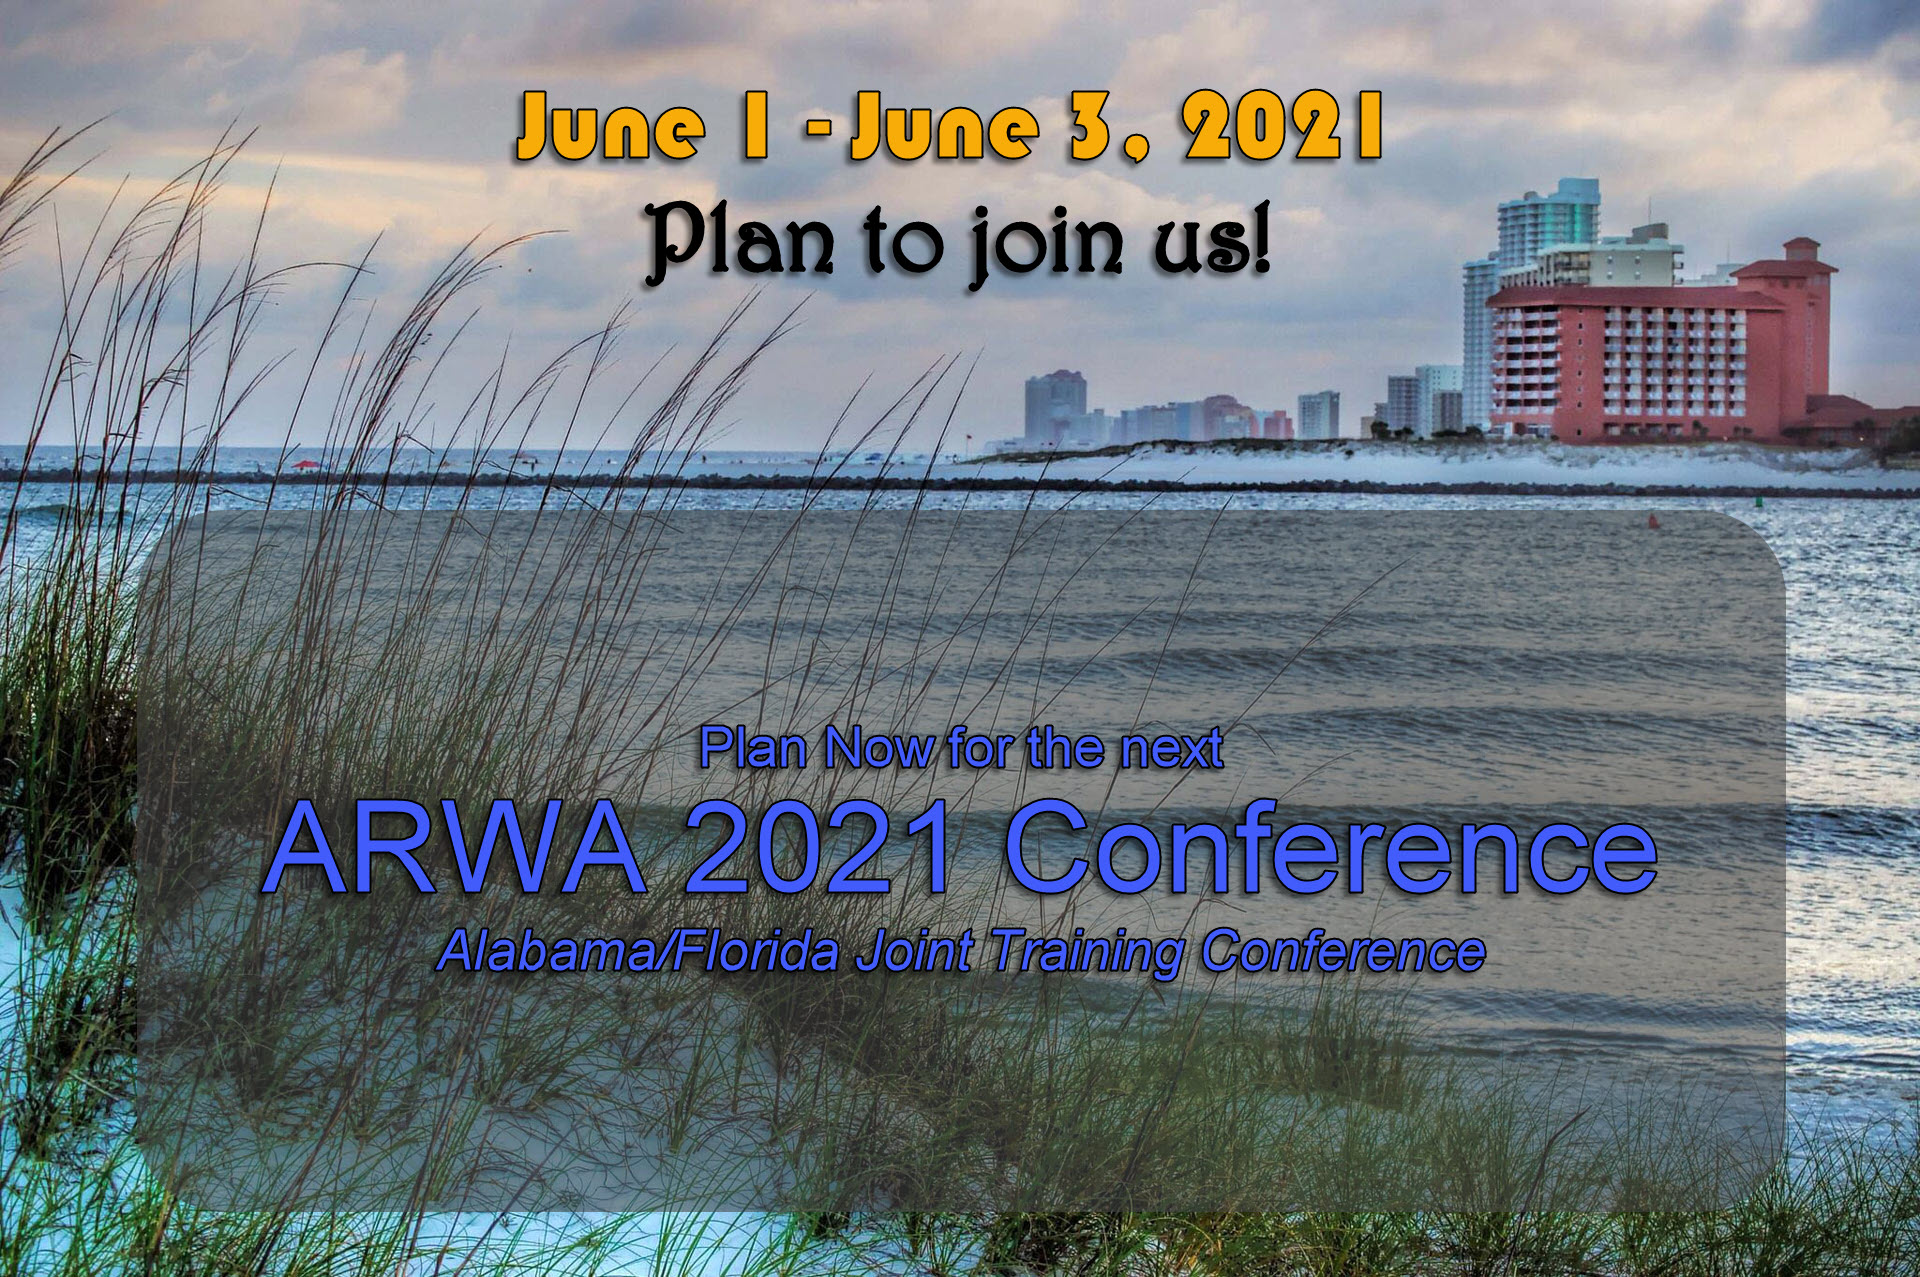 2021 Alabama Florida Joint Technical Training Conference